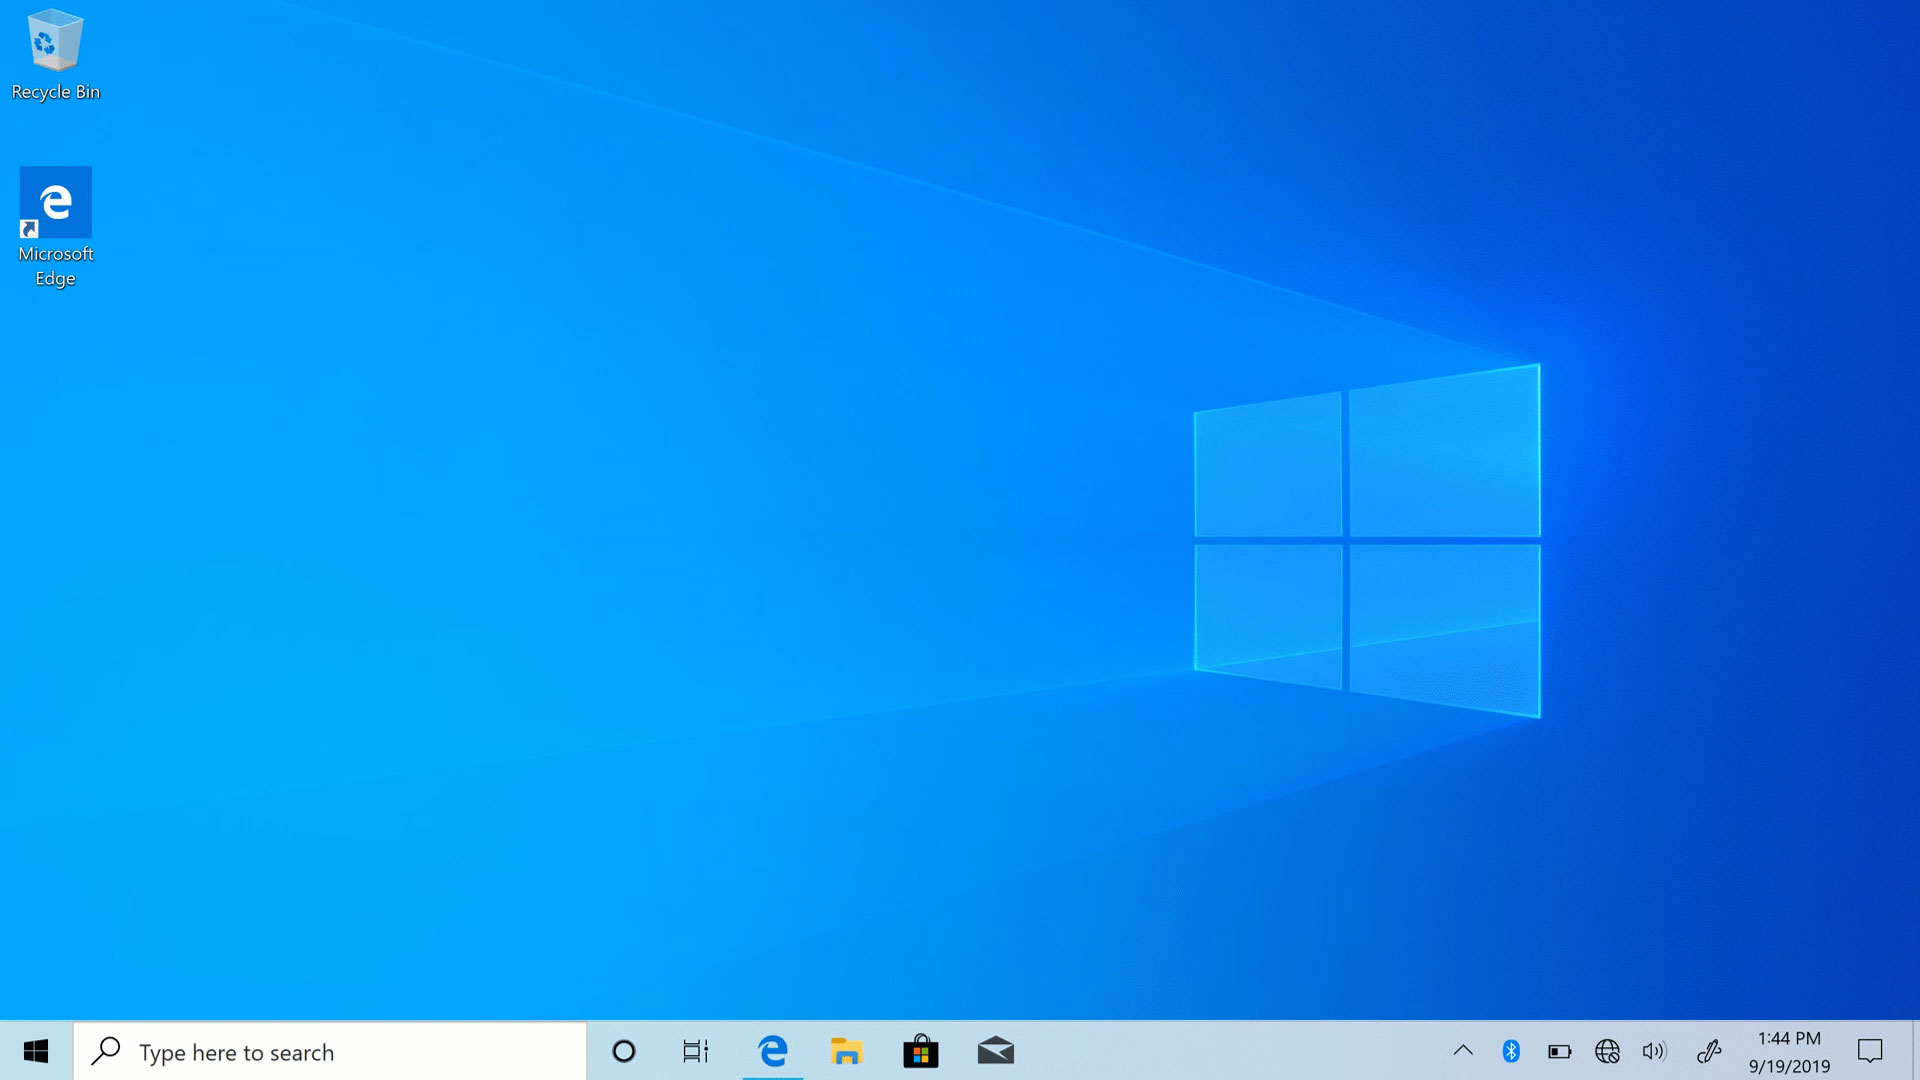 Microsoft's December update for Windows 10 is causing performance woes on some PCs